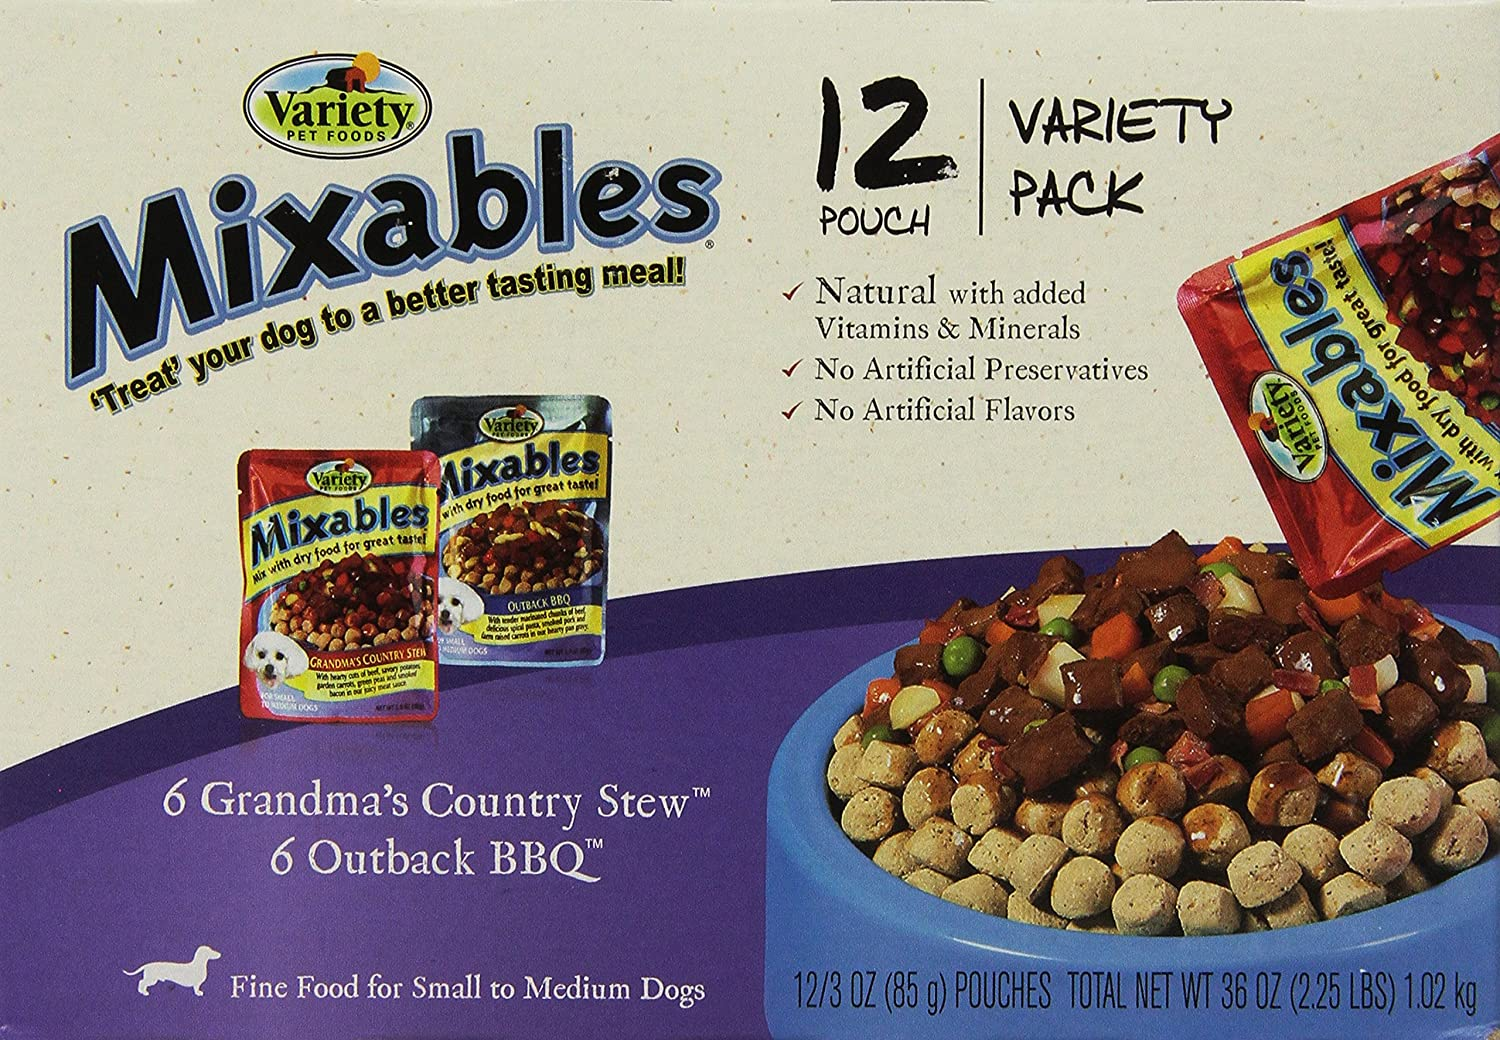 Variety 00077 123 ounce mixables beef lovers natural dog food variety 00077 123 ounce mixables beef lovers natural dog food includes 6 grandmas country stew and 6 outback bbq 2 pack pet food pet supplies amazon forumfinder Image collections